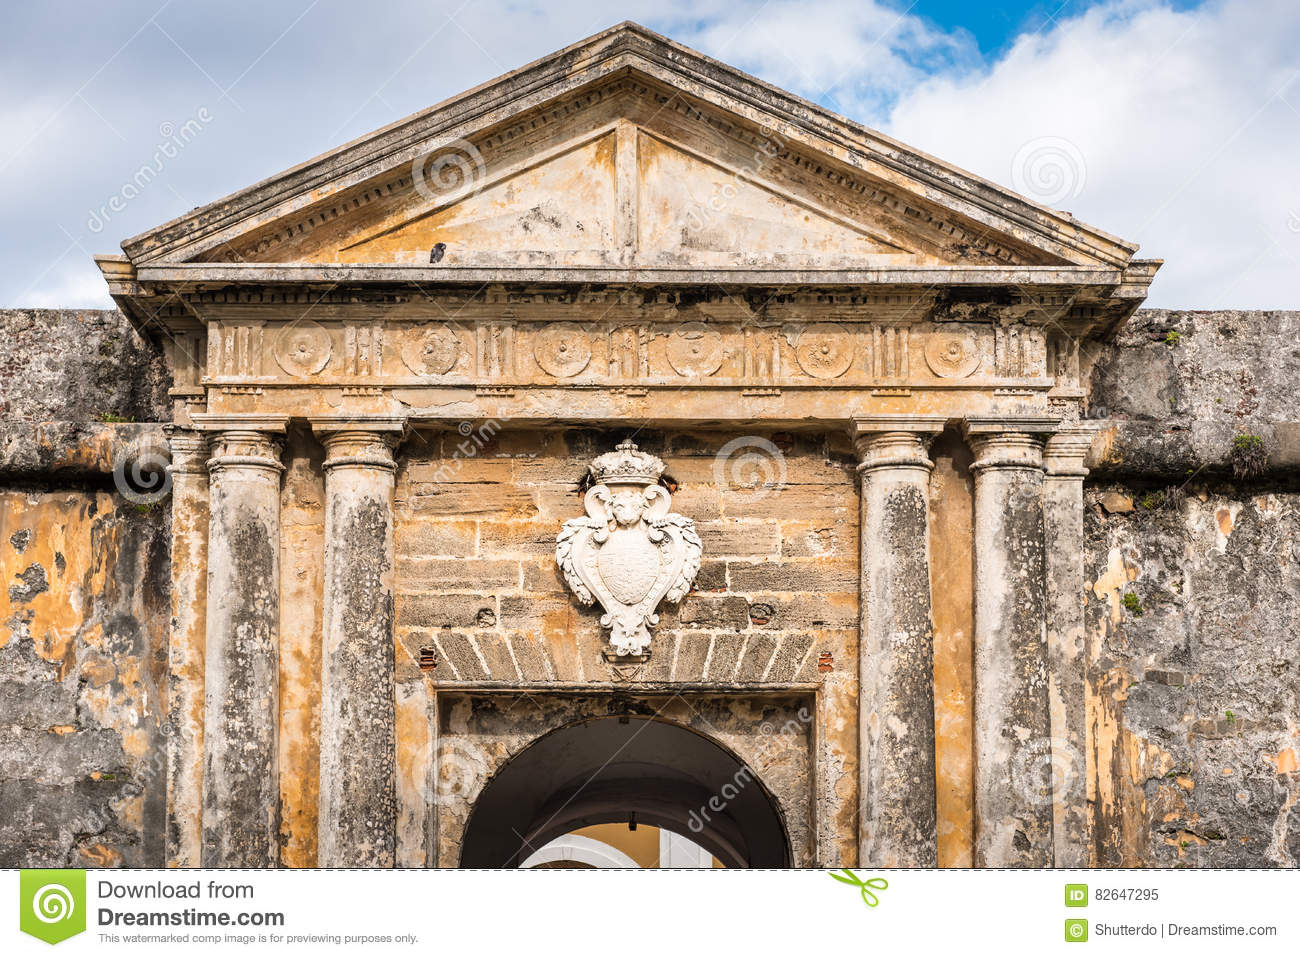 Ancient archway and medallion over door with stone columns